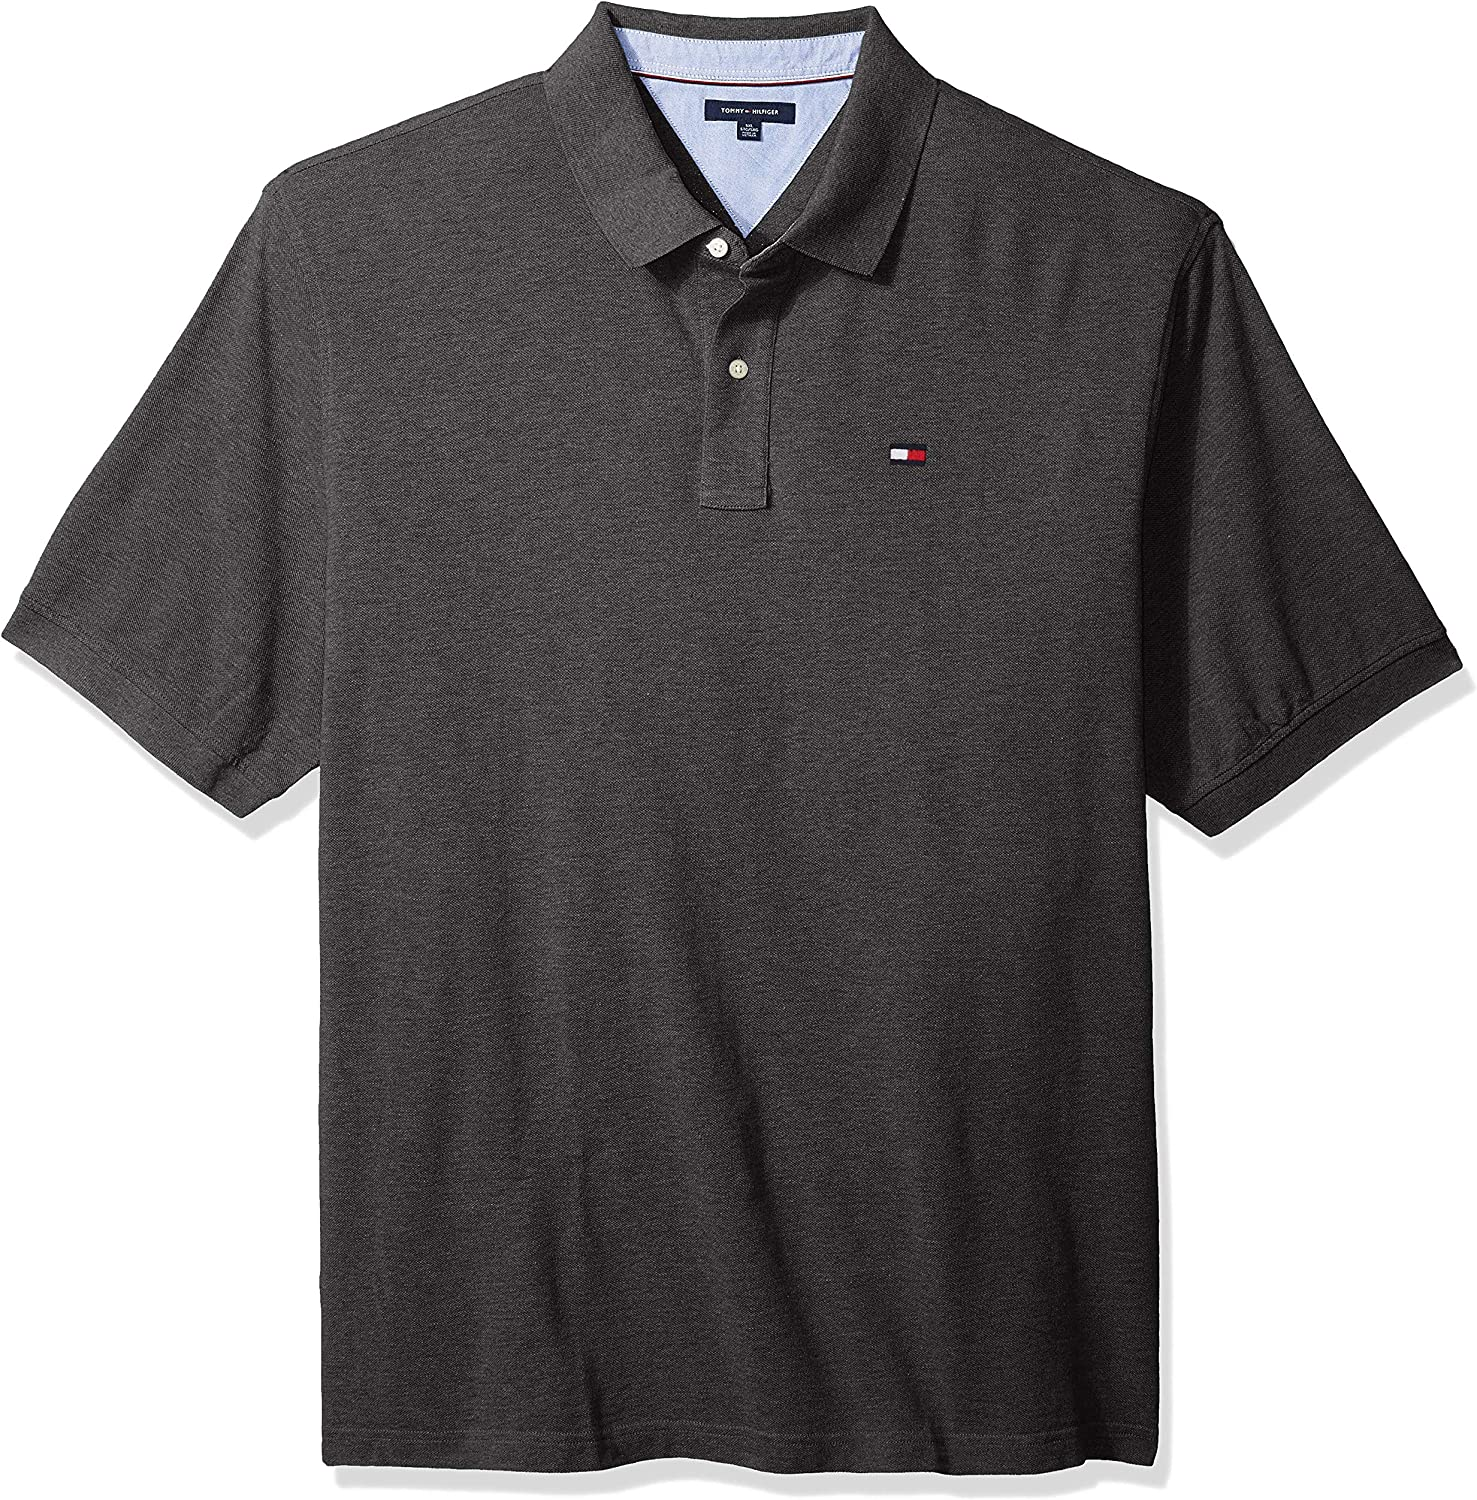 Tommy Hilfiger Max 71% OFF Men's Big Tall Short Sleeve Fit Polo Classic Choice in